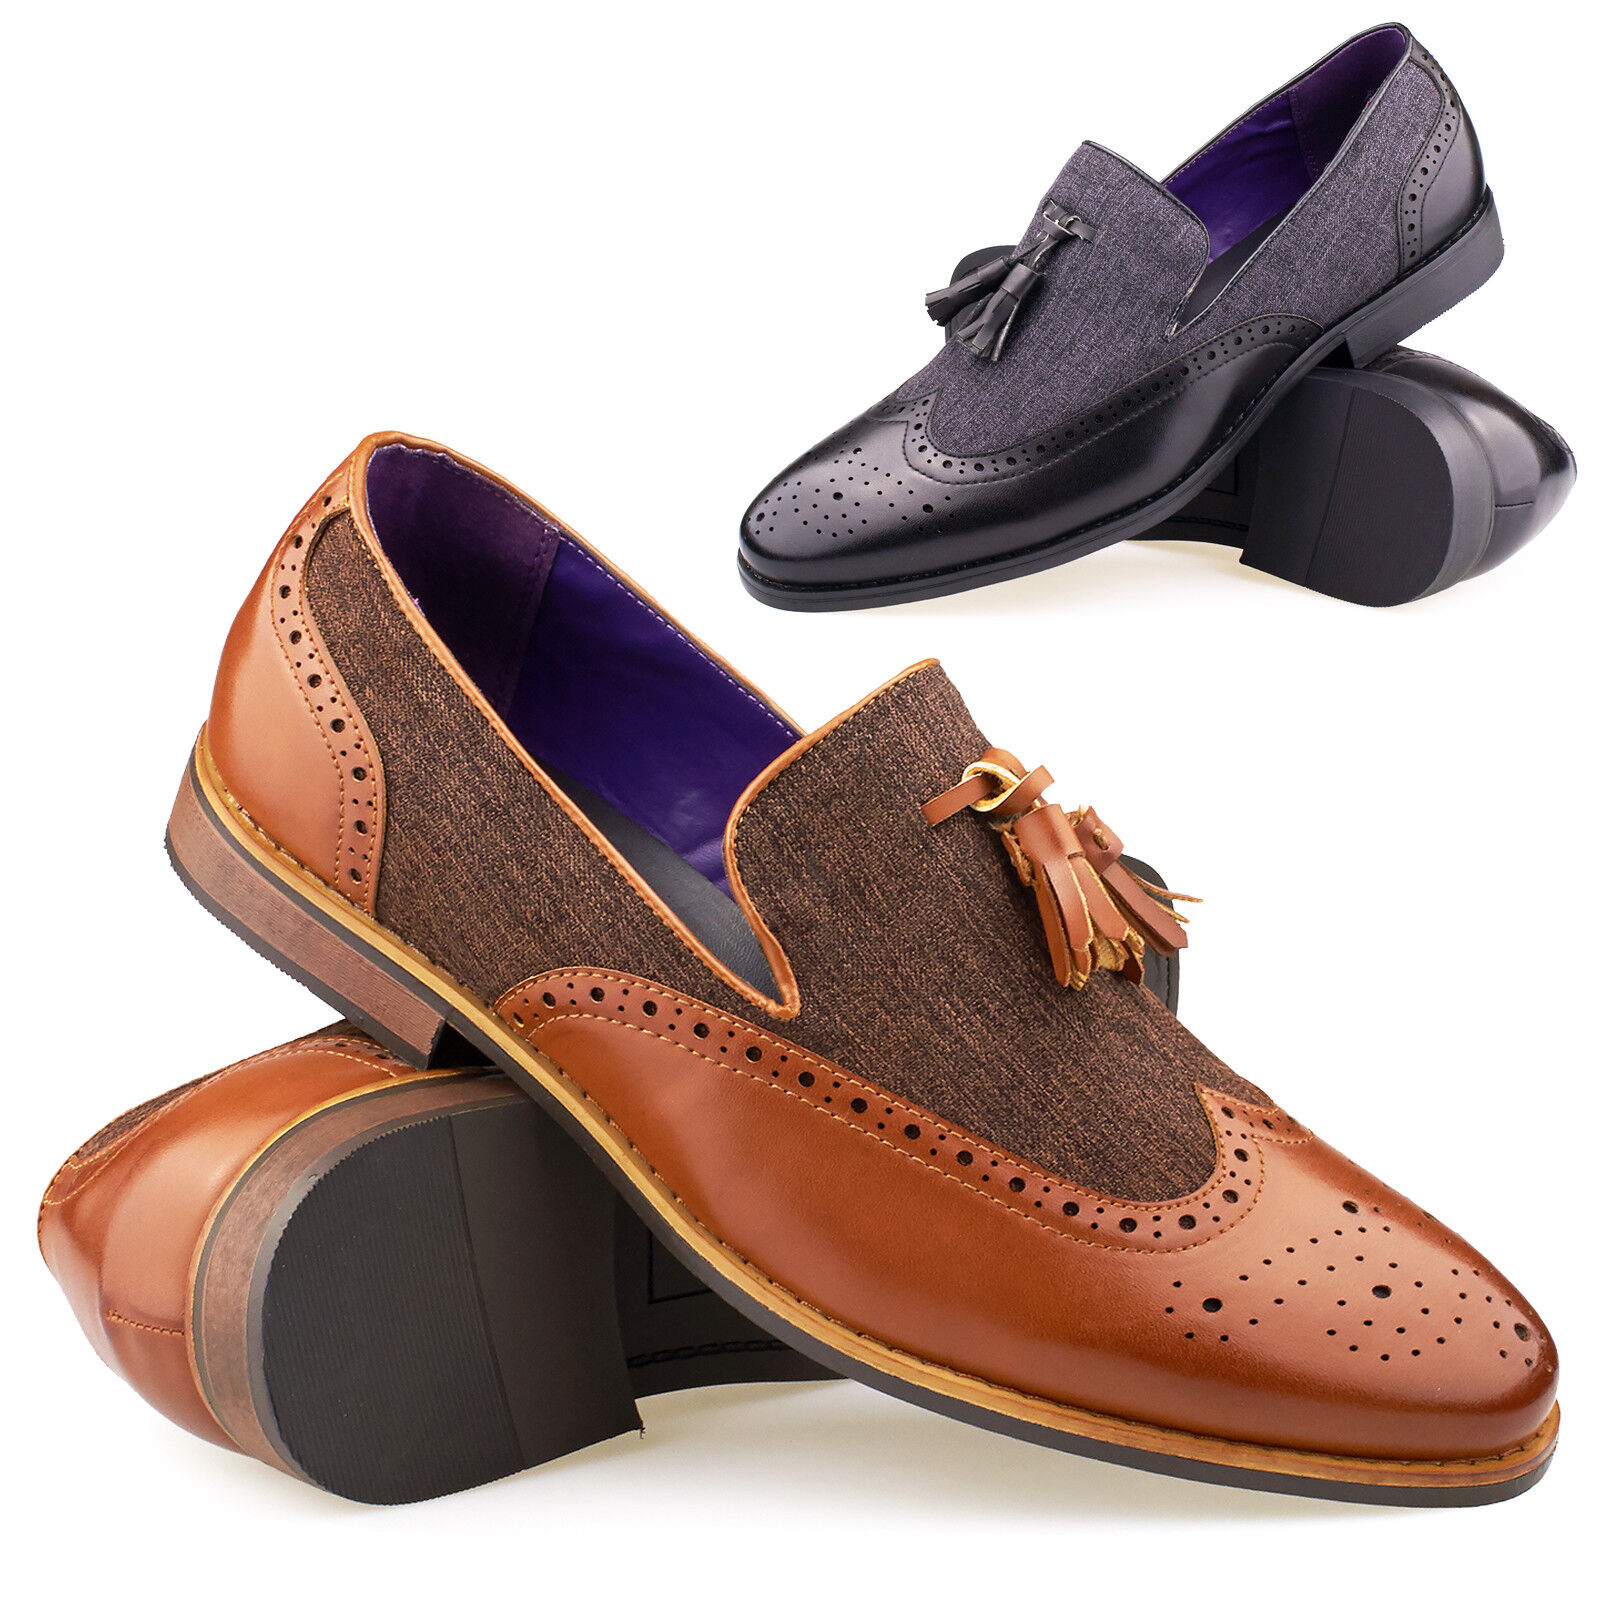 New Mens Leather Slip On Tassel Loafers Smart Casual Formal Fashion shoes 6-11